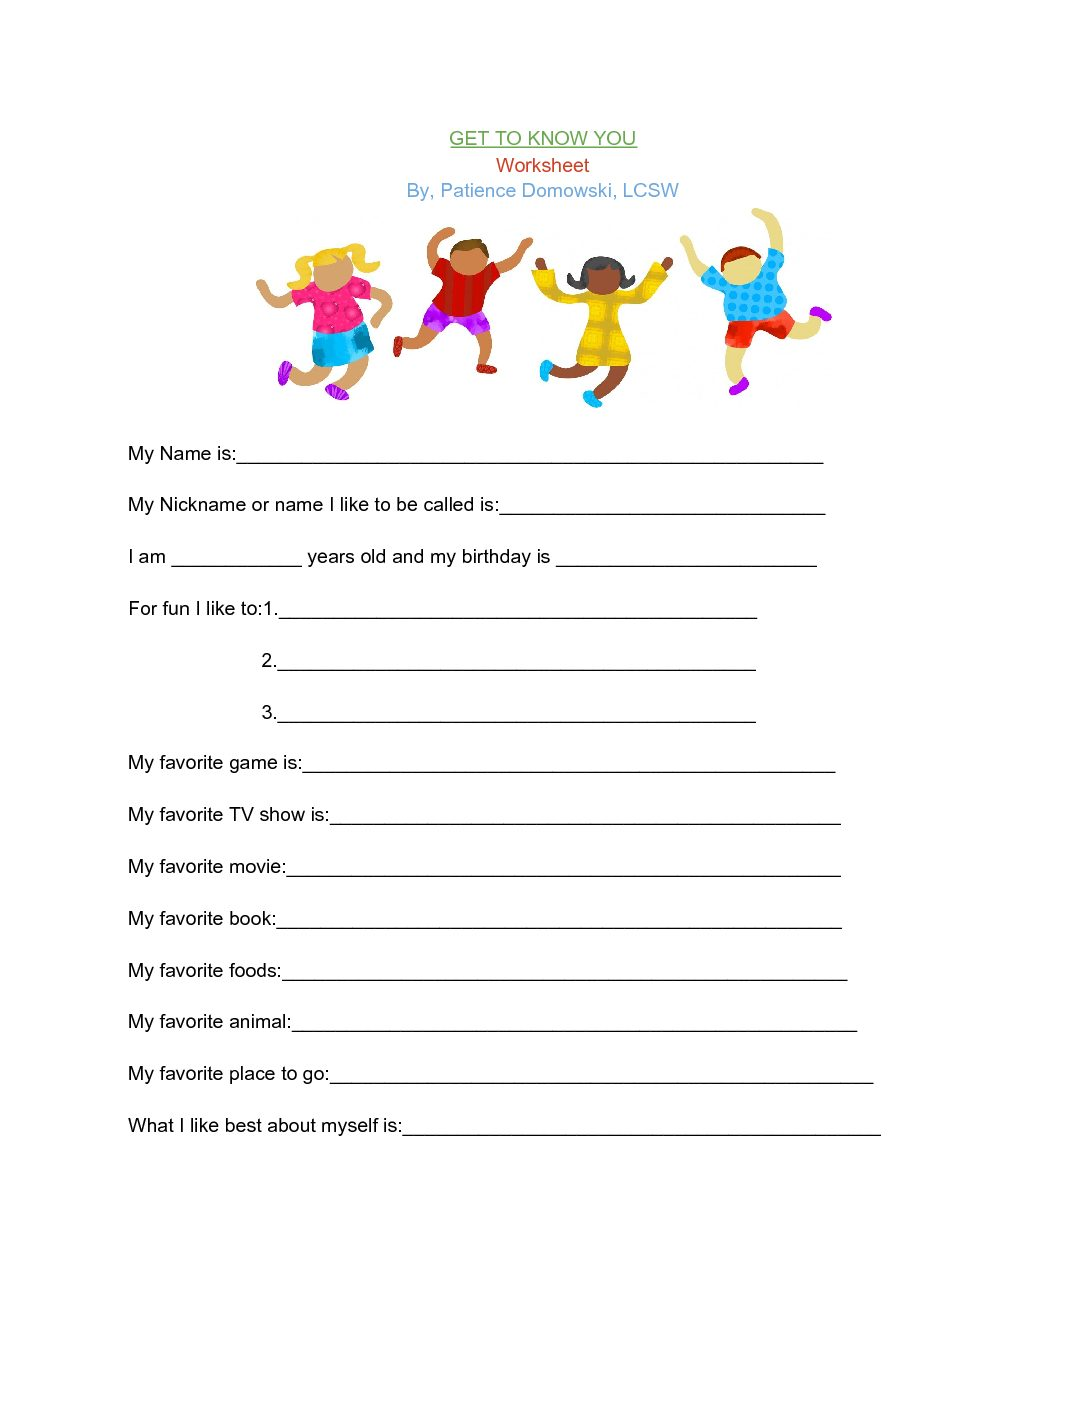 Get To Know You Rapport Building Worksheet